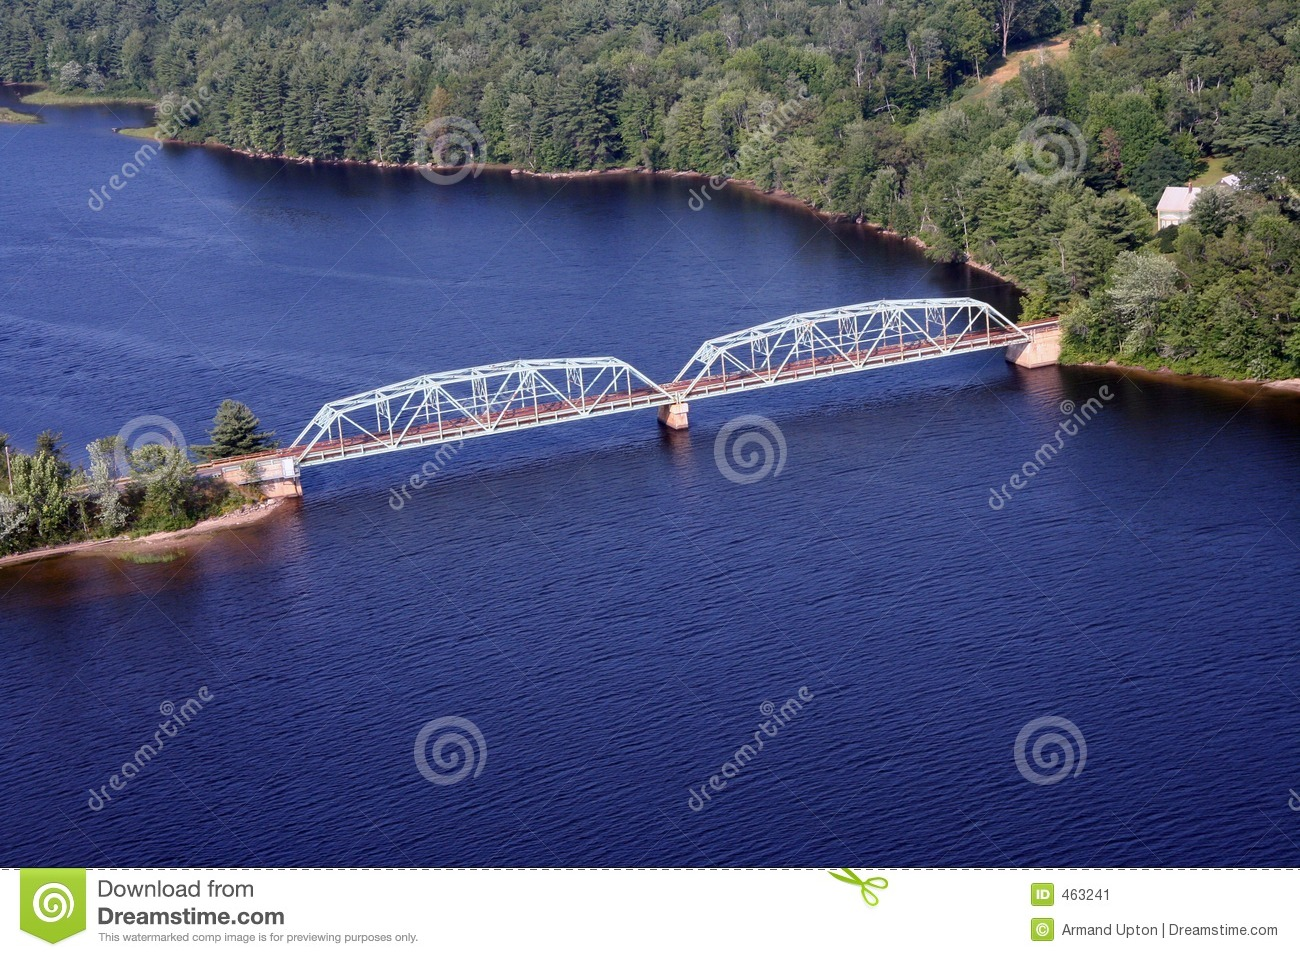 Download Bridge Over Troubled Waters Stock Image - Image of water, holiday: 463241